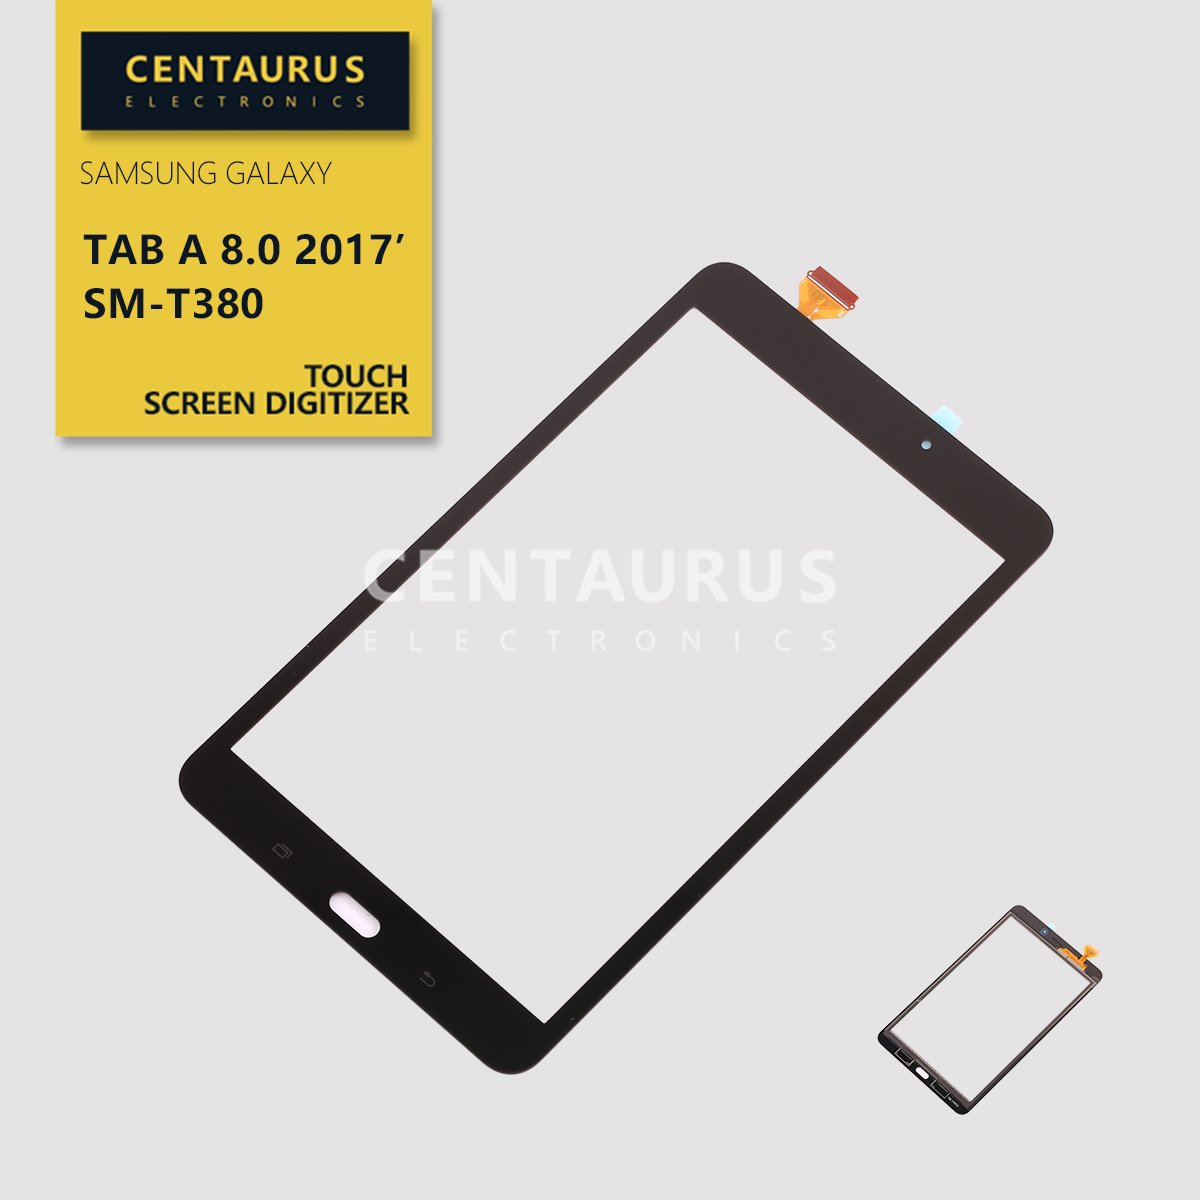 Touch Screen T380 For Samsung Galaxy Tab A 8.0 2017 (WIFI) SM-T380 Touch Screen Digitizer Panel Replacement Part (NO LCD) Black